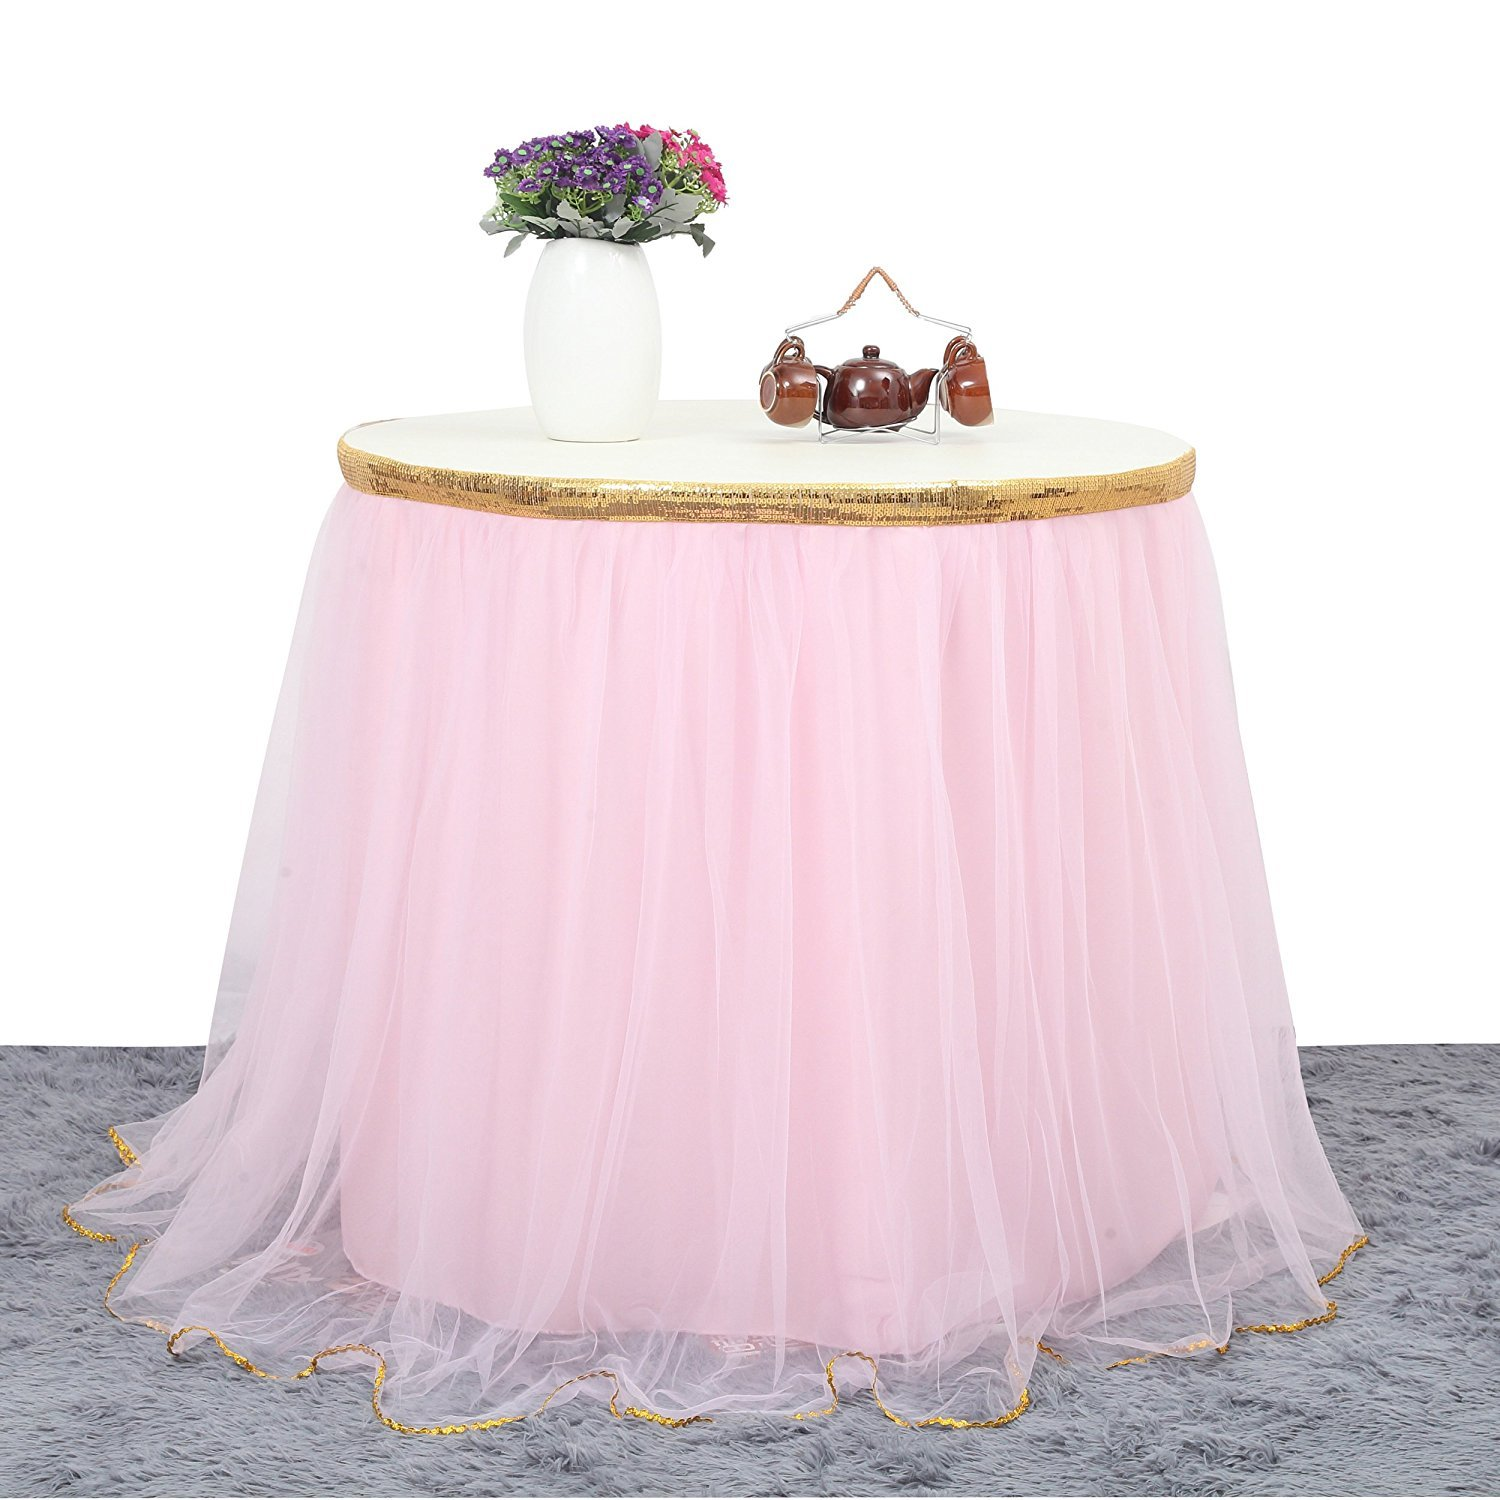 Tutu Table Skirt,MineSha 4.5 Yards Handmade Fluffy Pink with Golden Brim Tutu Table Skirt for Rectangle or Round Tables for Party Decoration, Meetings, Birthdays, Wedding, Baby Shower